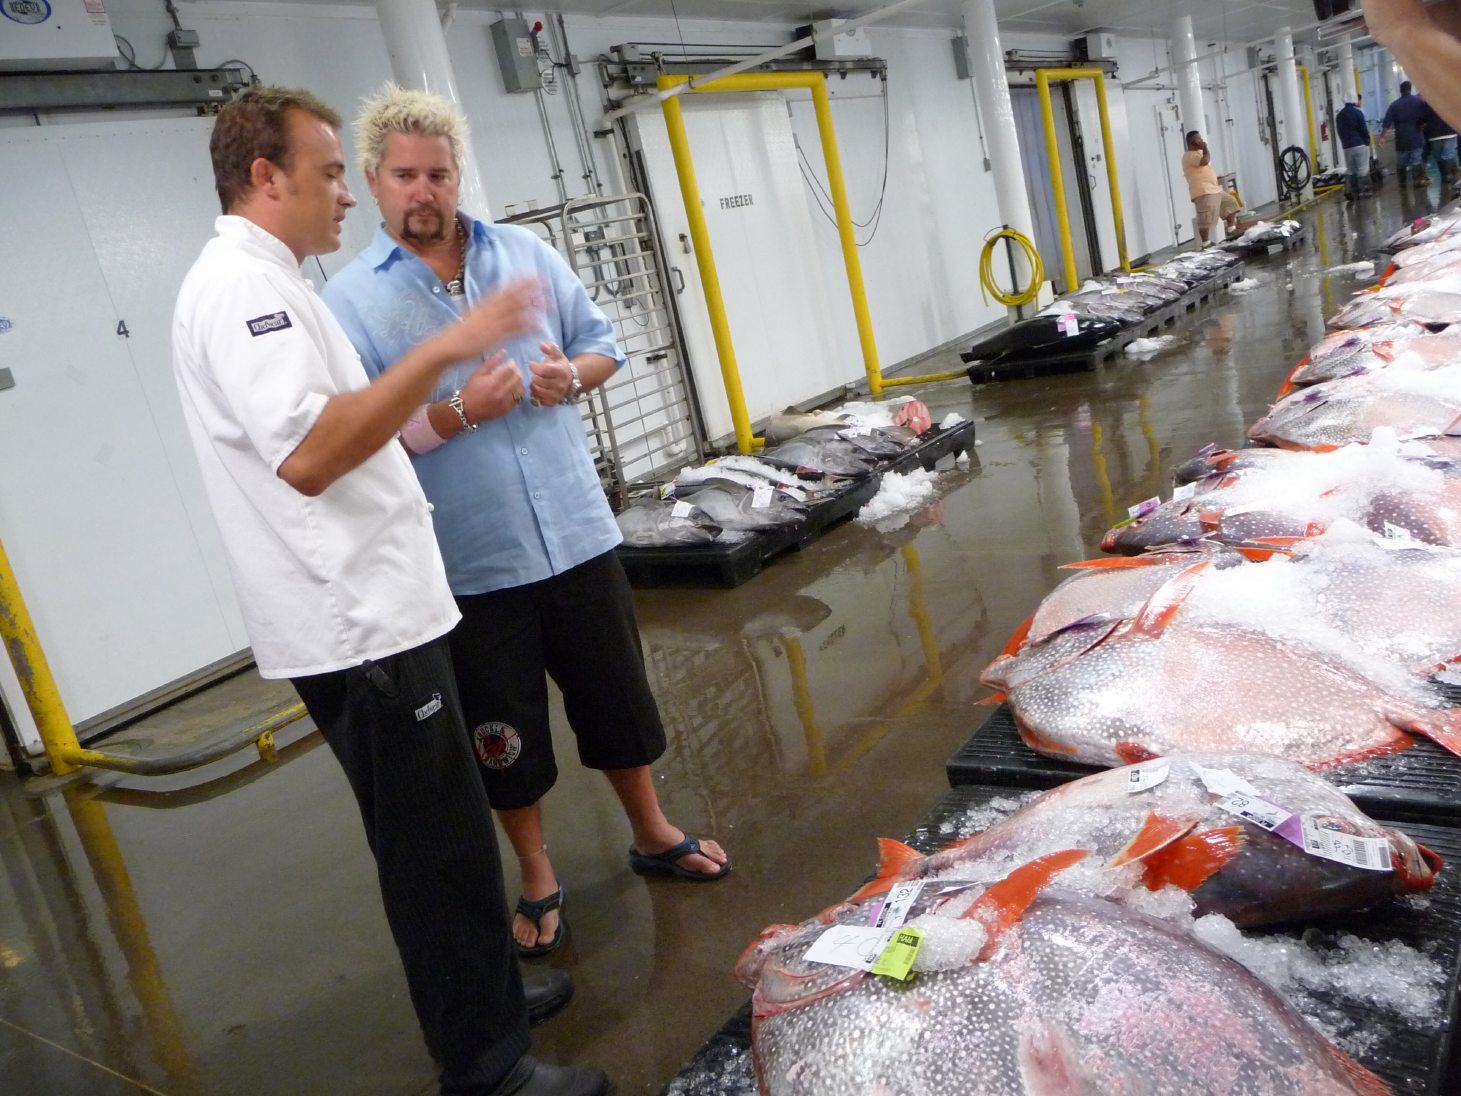 Diners_Drive_Ins_Dives_Hawaii_episode_final_cut_eateries